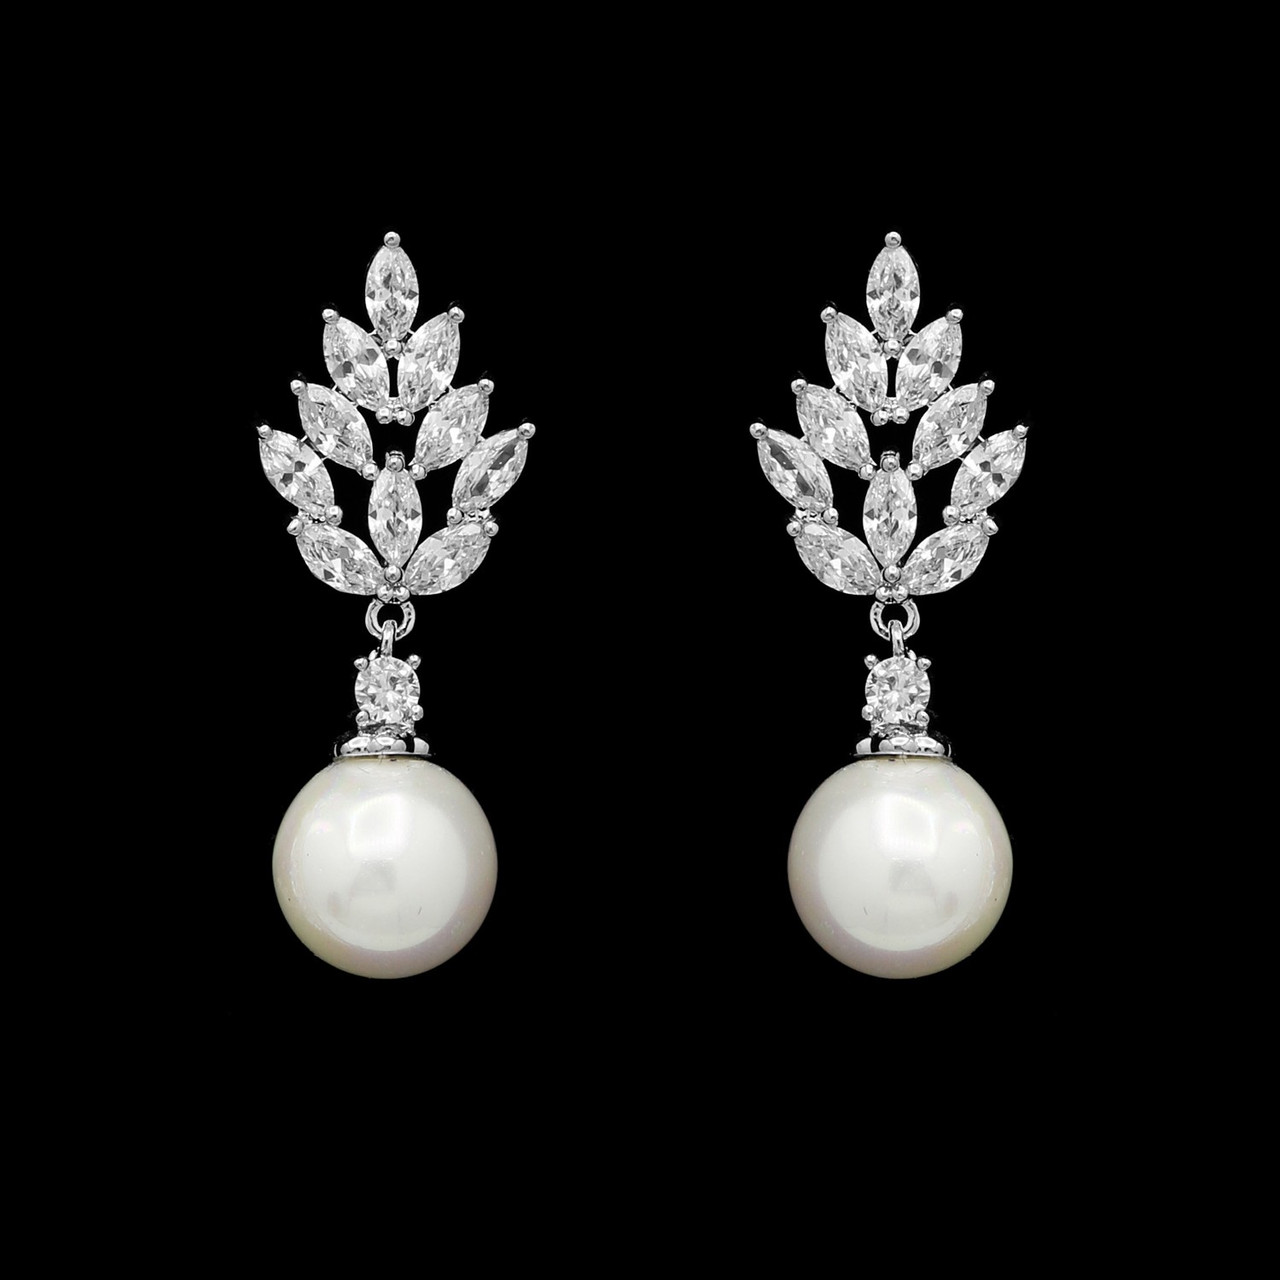 Formal Cubic Zirconia Earrings for Bridesmaids and Brides - #4118